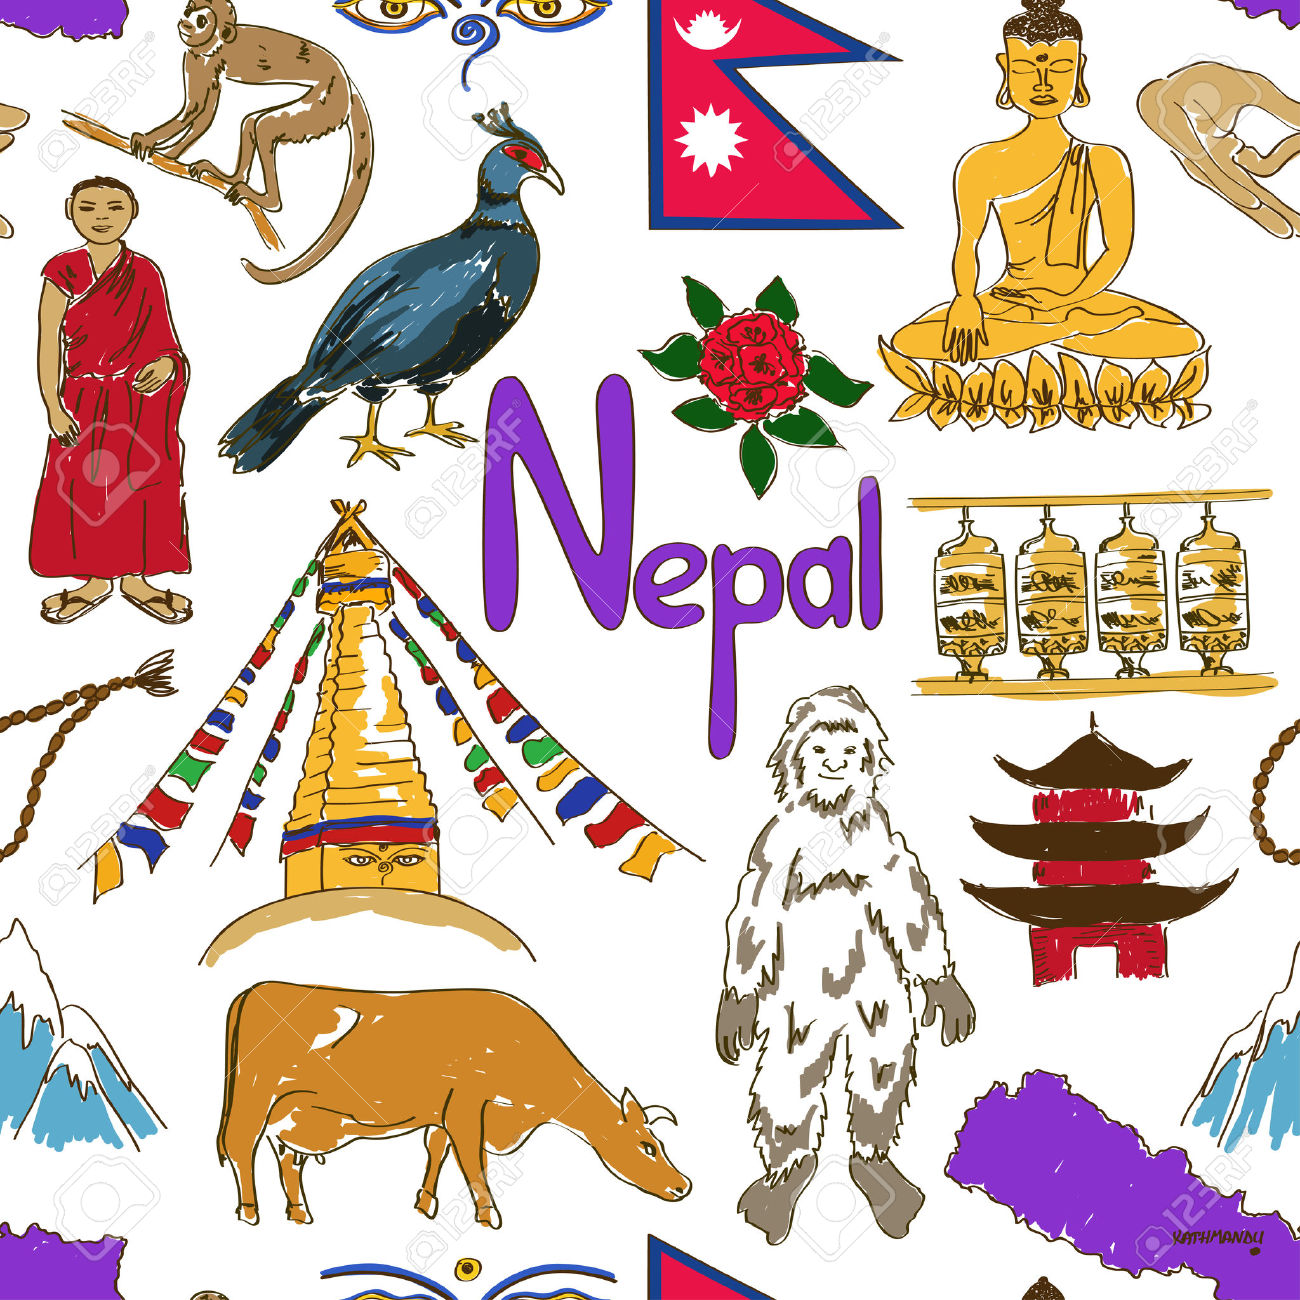 Nepal clipart #11, Download drawings